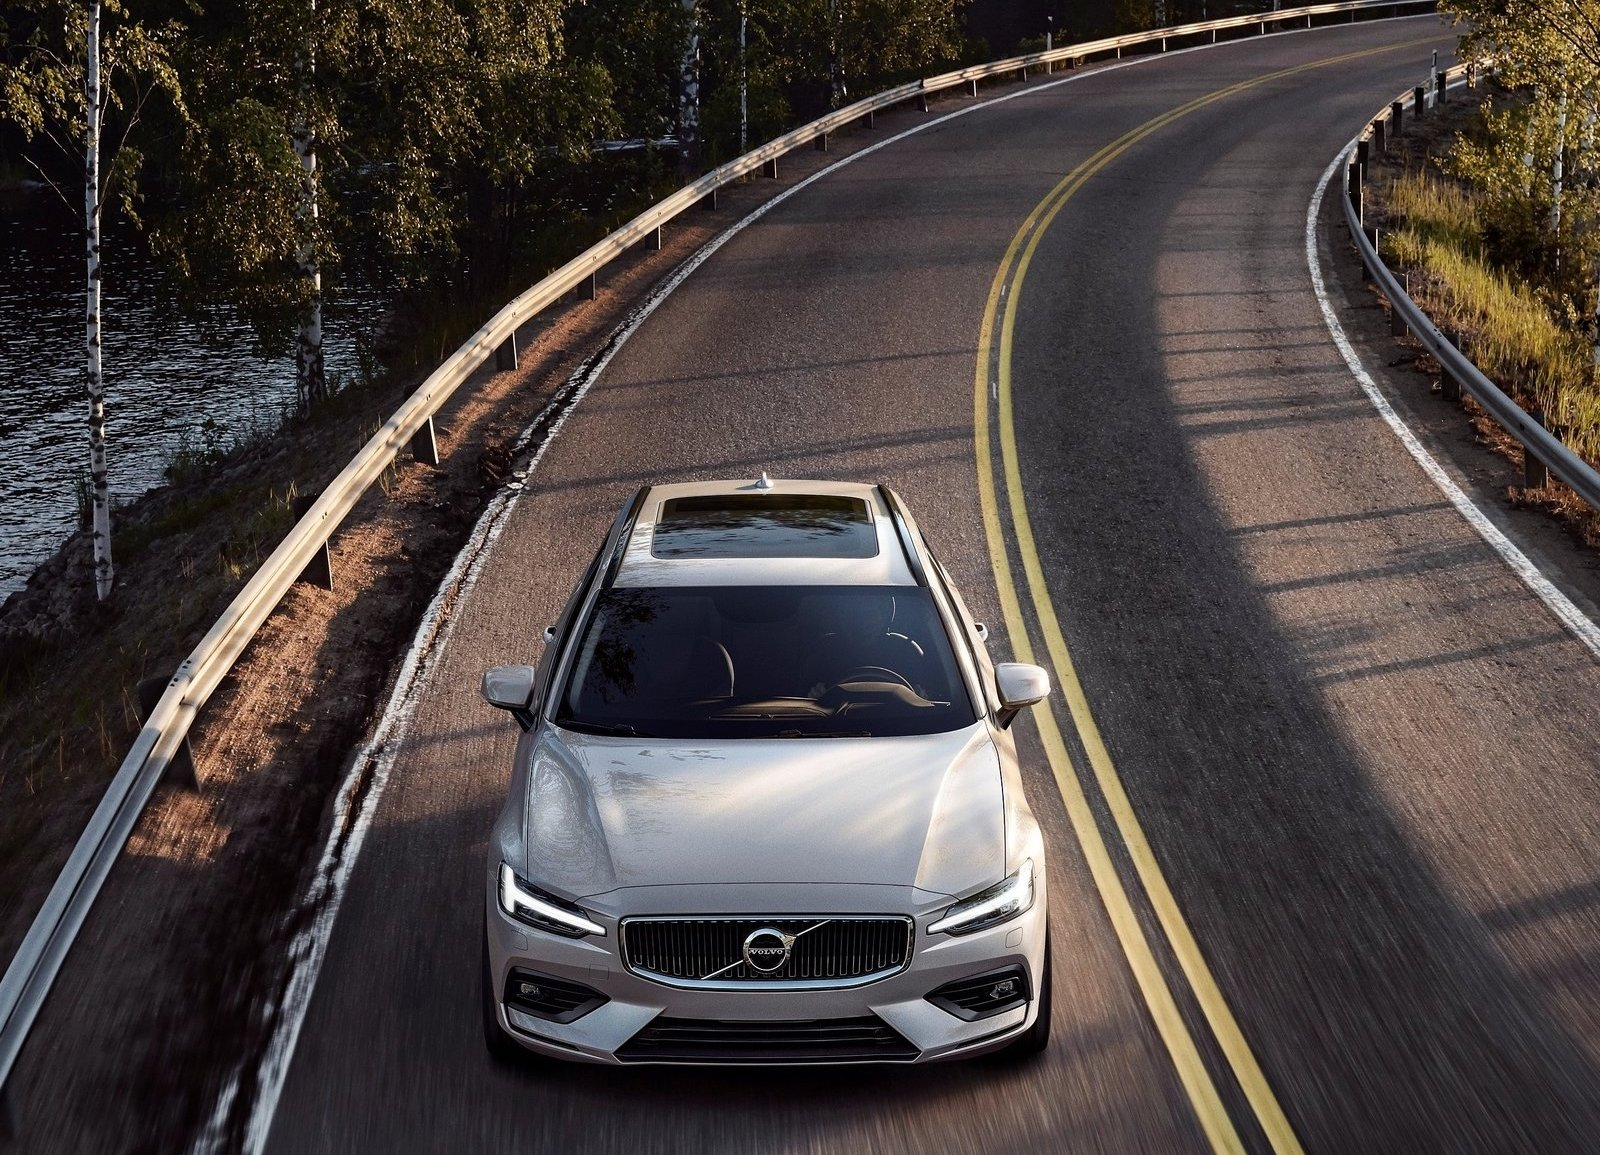 2019 Volvo V60 front driving